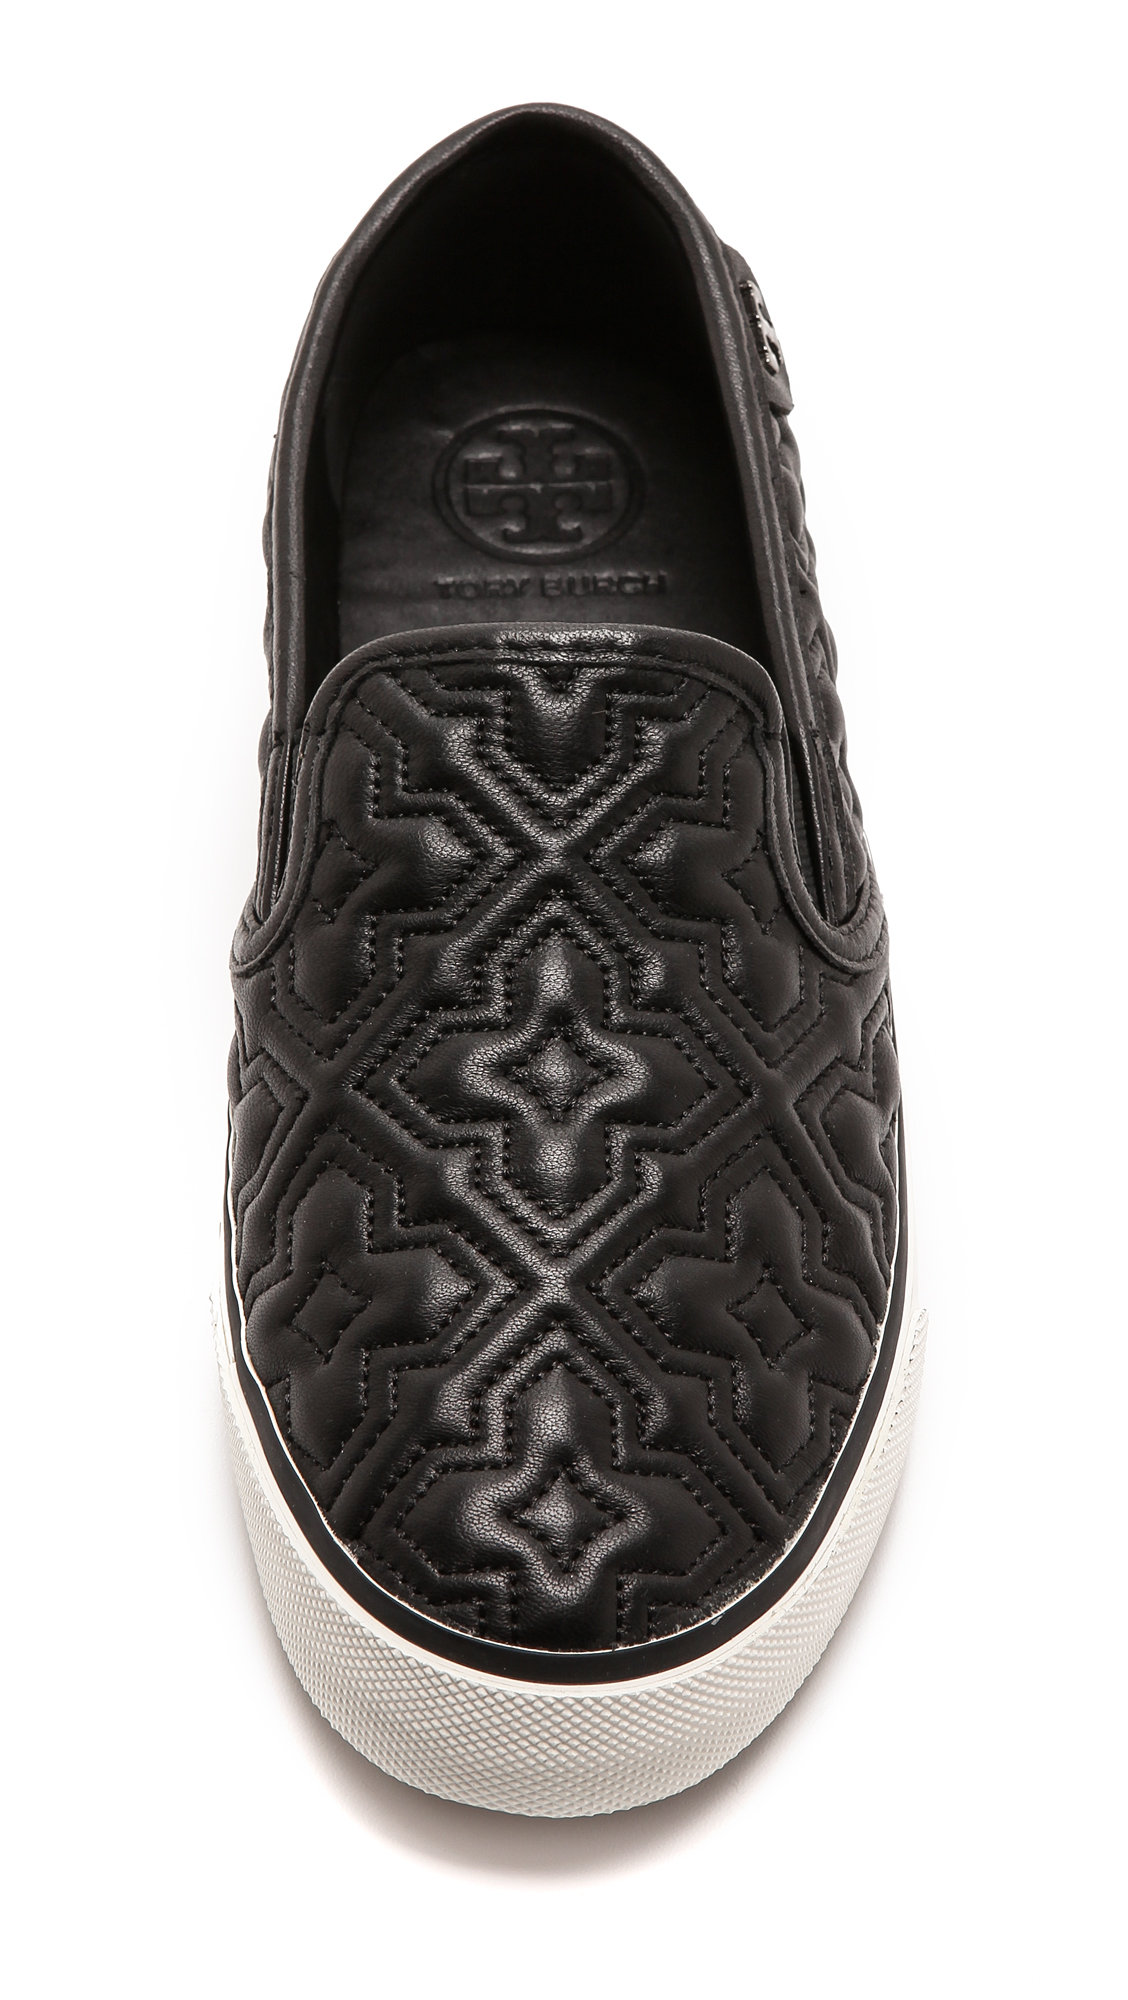 e40e57356ec9 Tory Burch Jesse 2 Quilted Sneakers